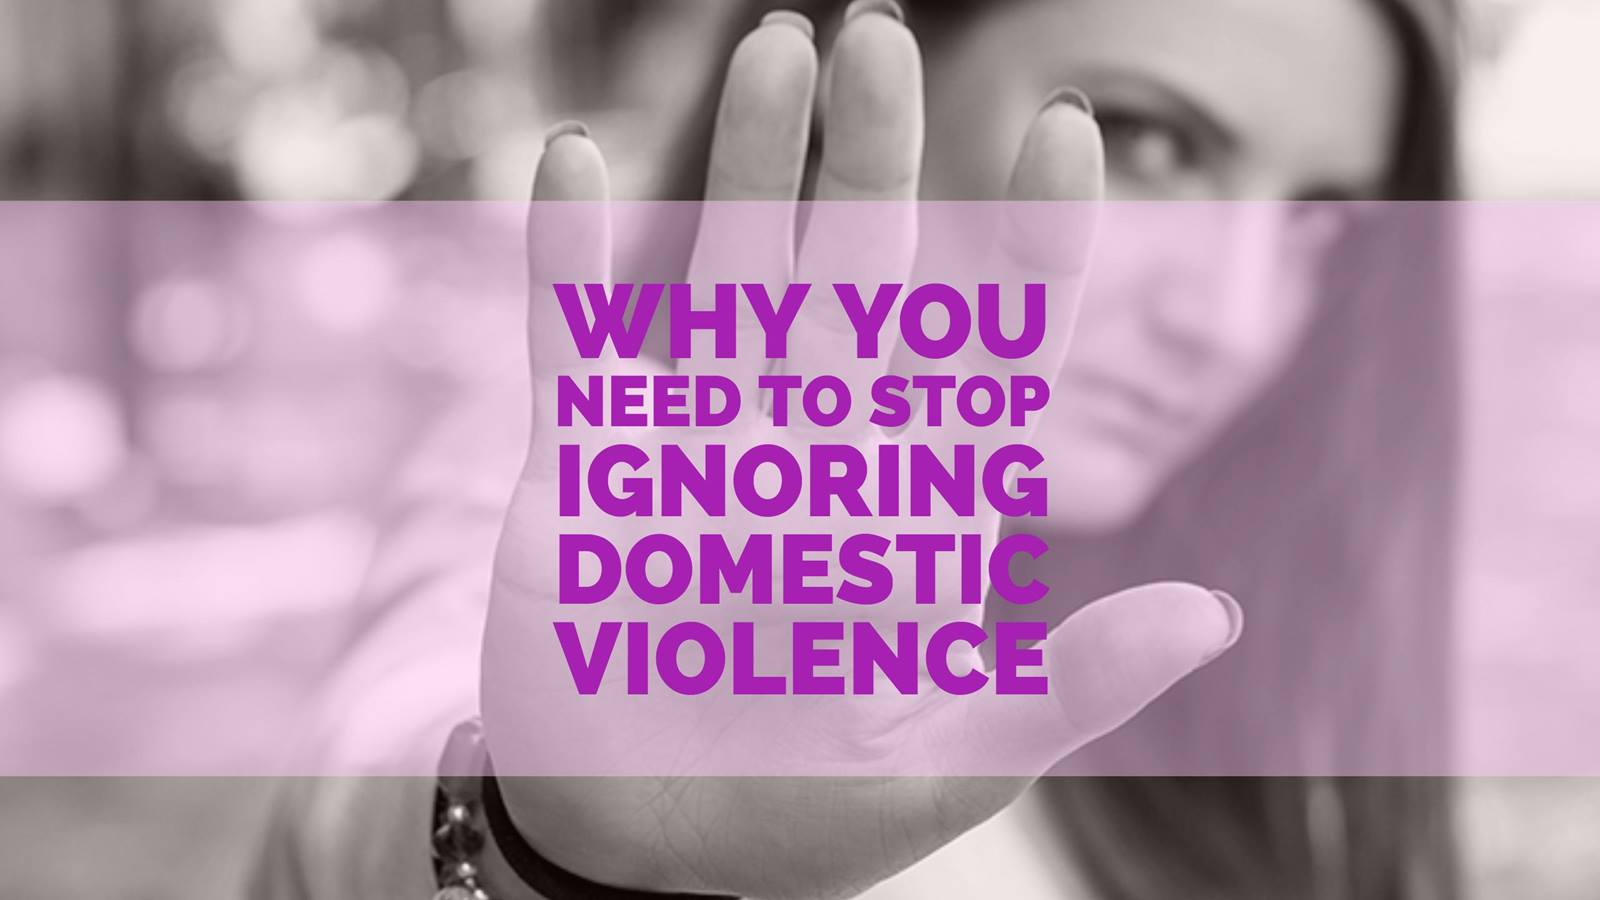 Why You Need to Stop Ignoring Domestic Violence